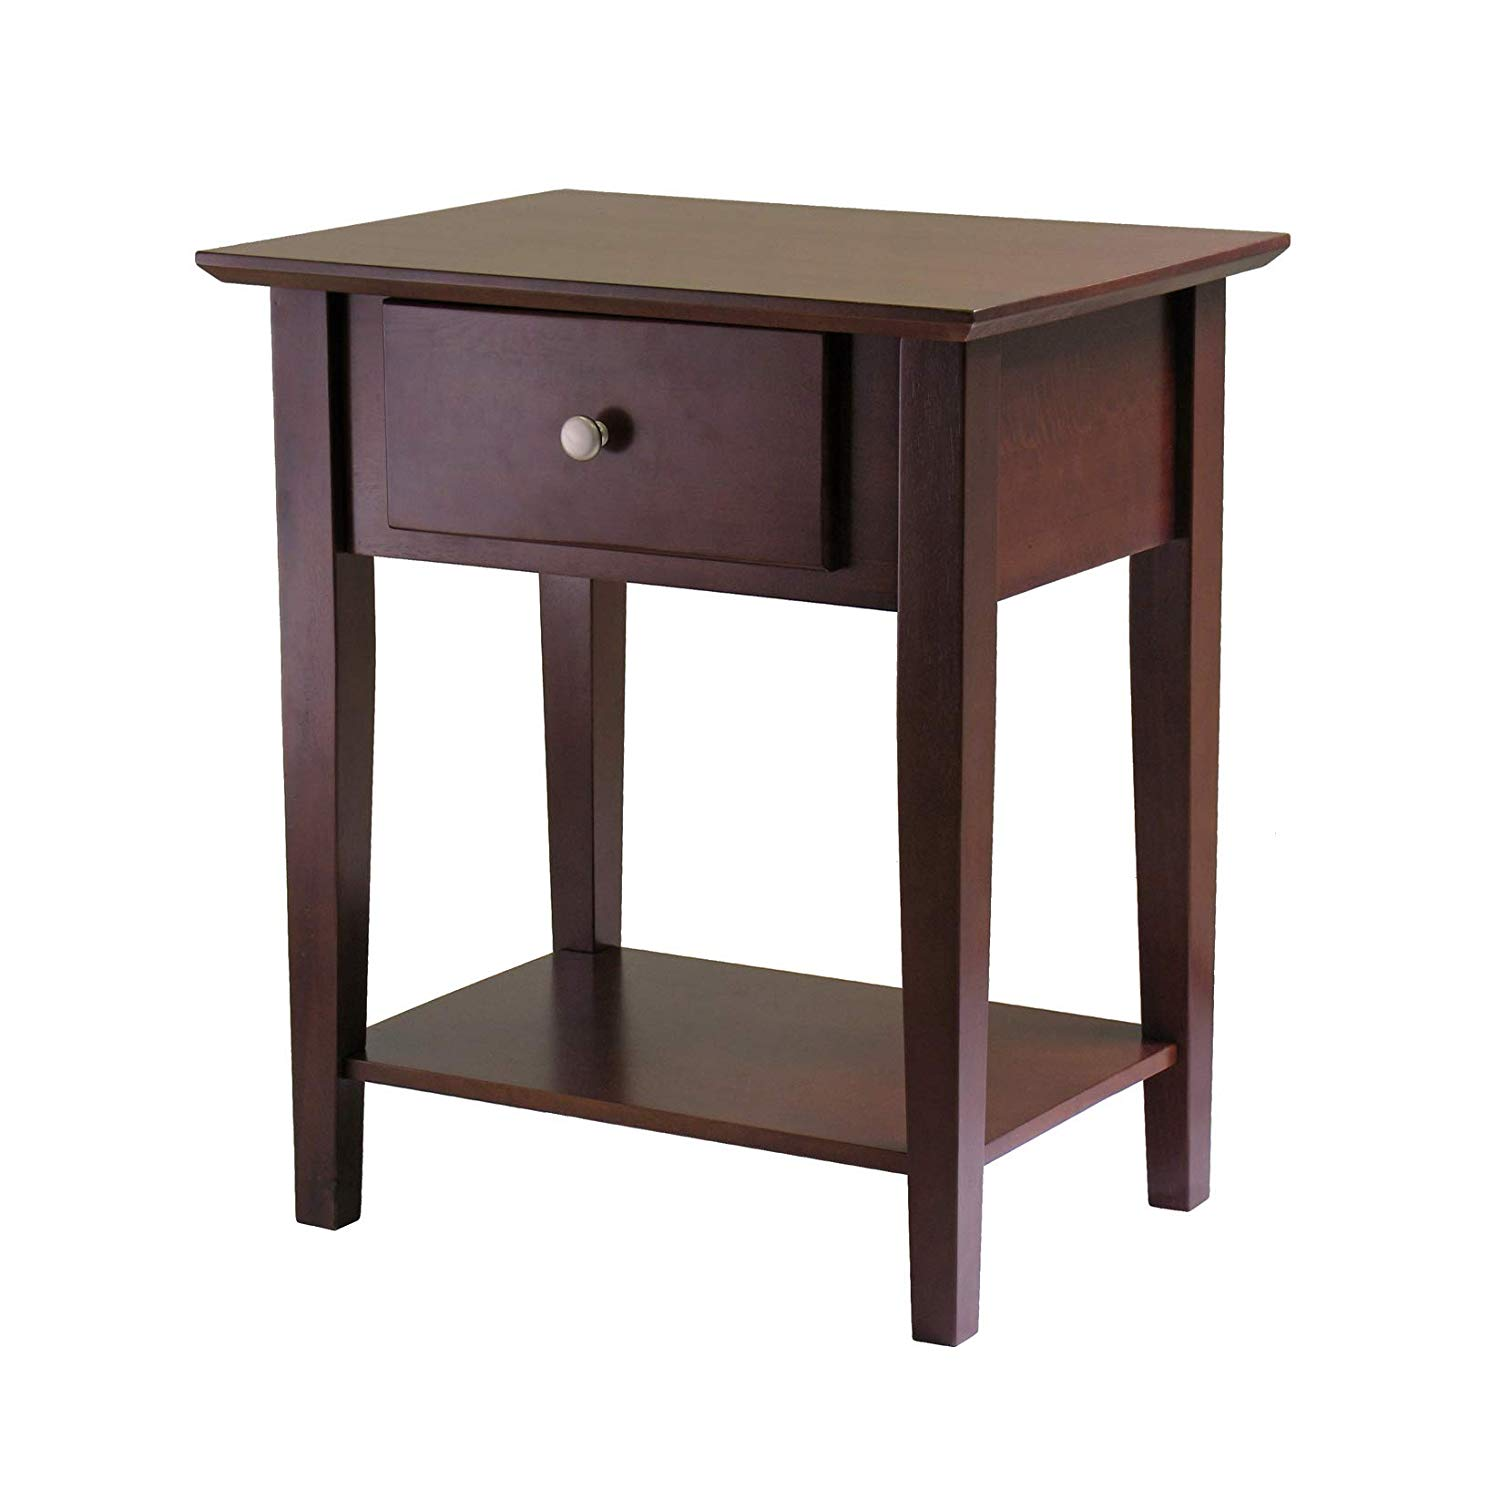 winsome wood shaker accent table antique walnut oak kitchen dining embroidered tablecloth corner display furniture pulls couch tro lamps sportcraft ping pong elm coffee pottery